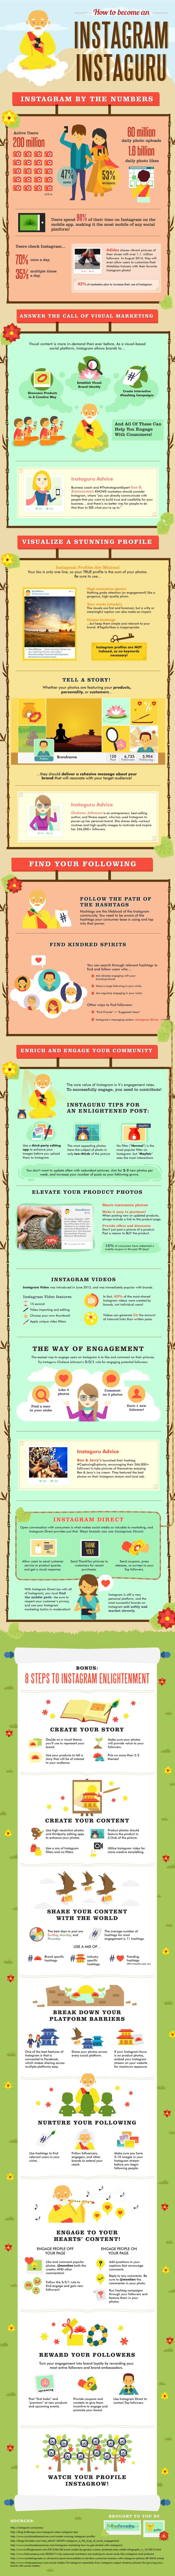 Infographic: How To Become an Instagram Instaguru